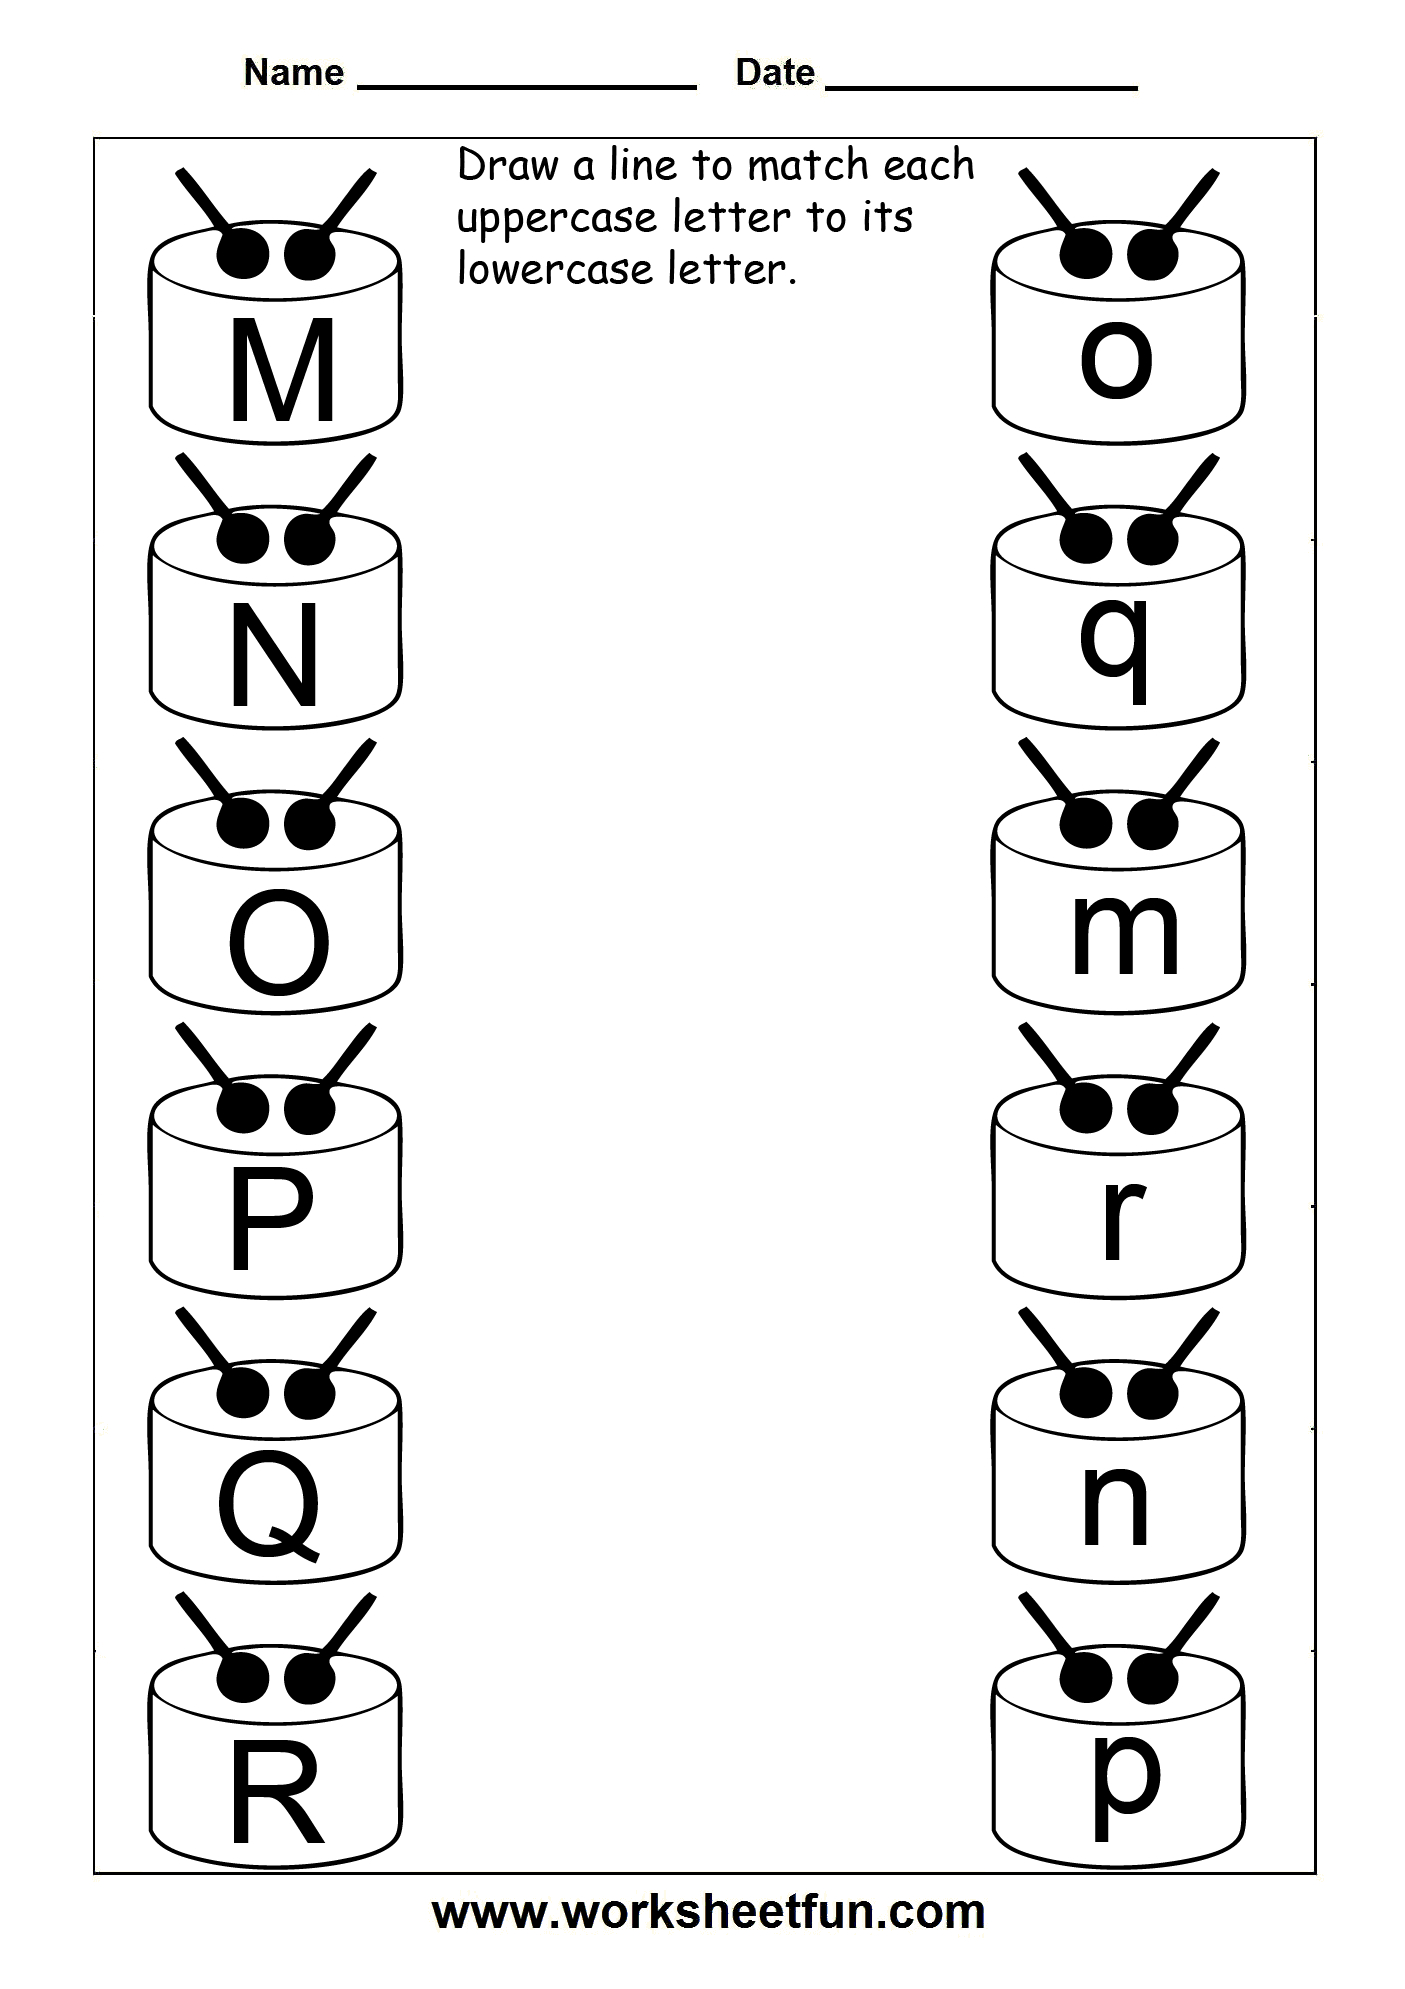 Match Uppercase And Lowercase Letters 13 Worksheets